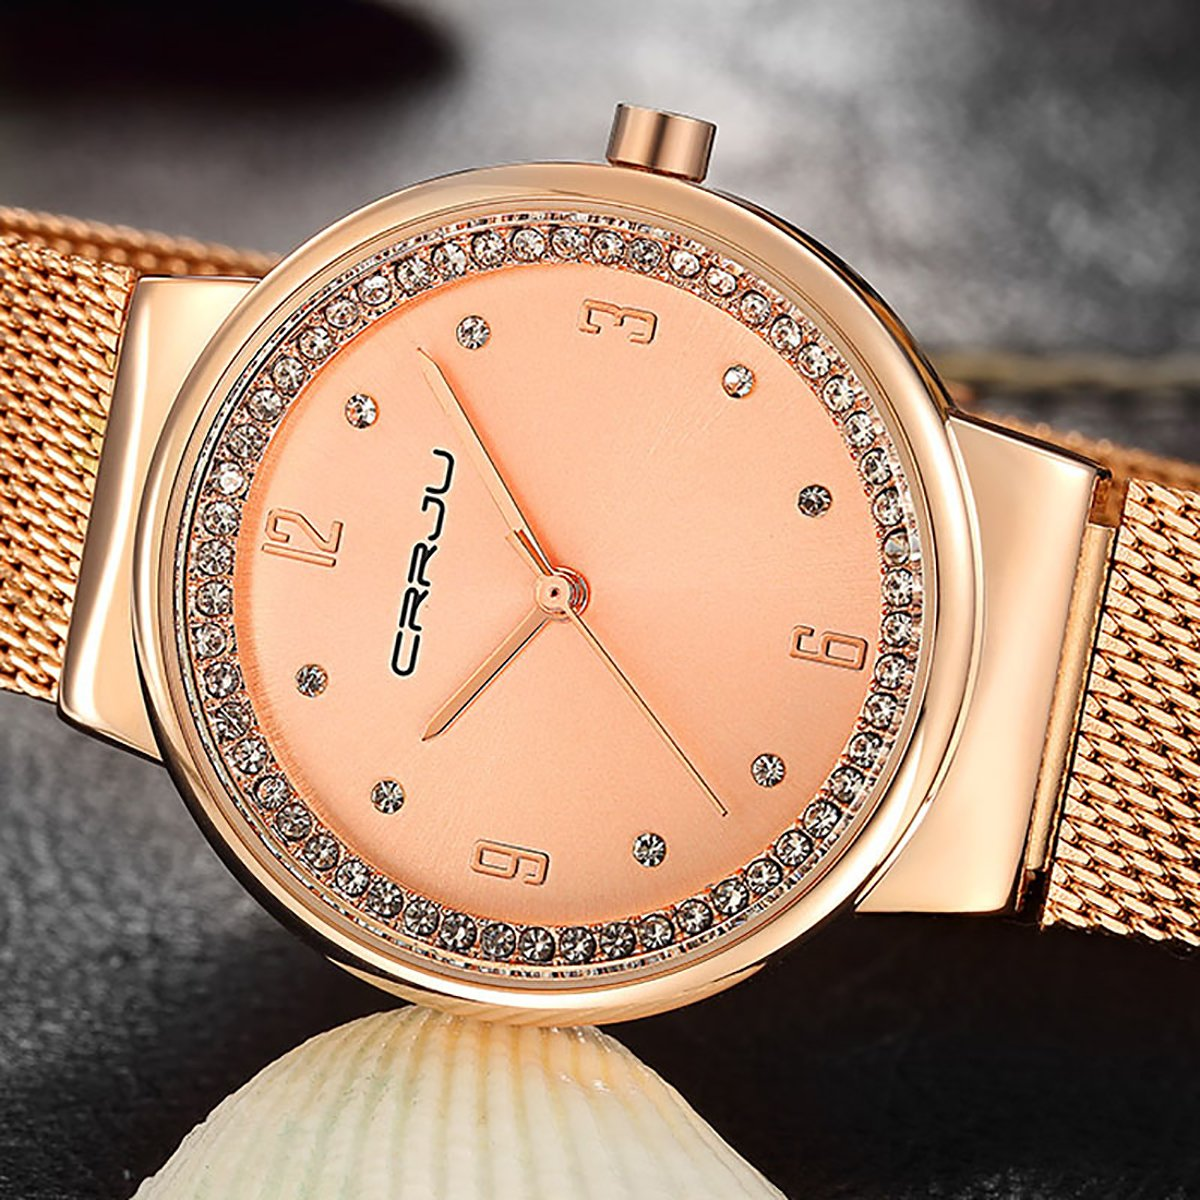 Modiwen Diamond Steel mesh impermeabile orologi da polso con movimento al quarzo vestito donna Leisure orologio braccialetto donna Rose Gold